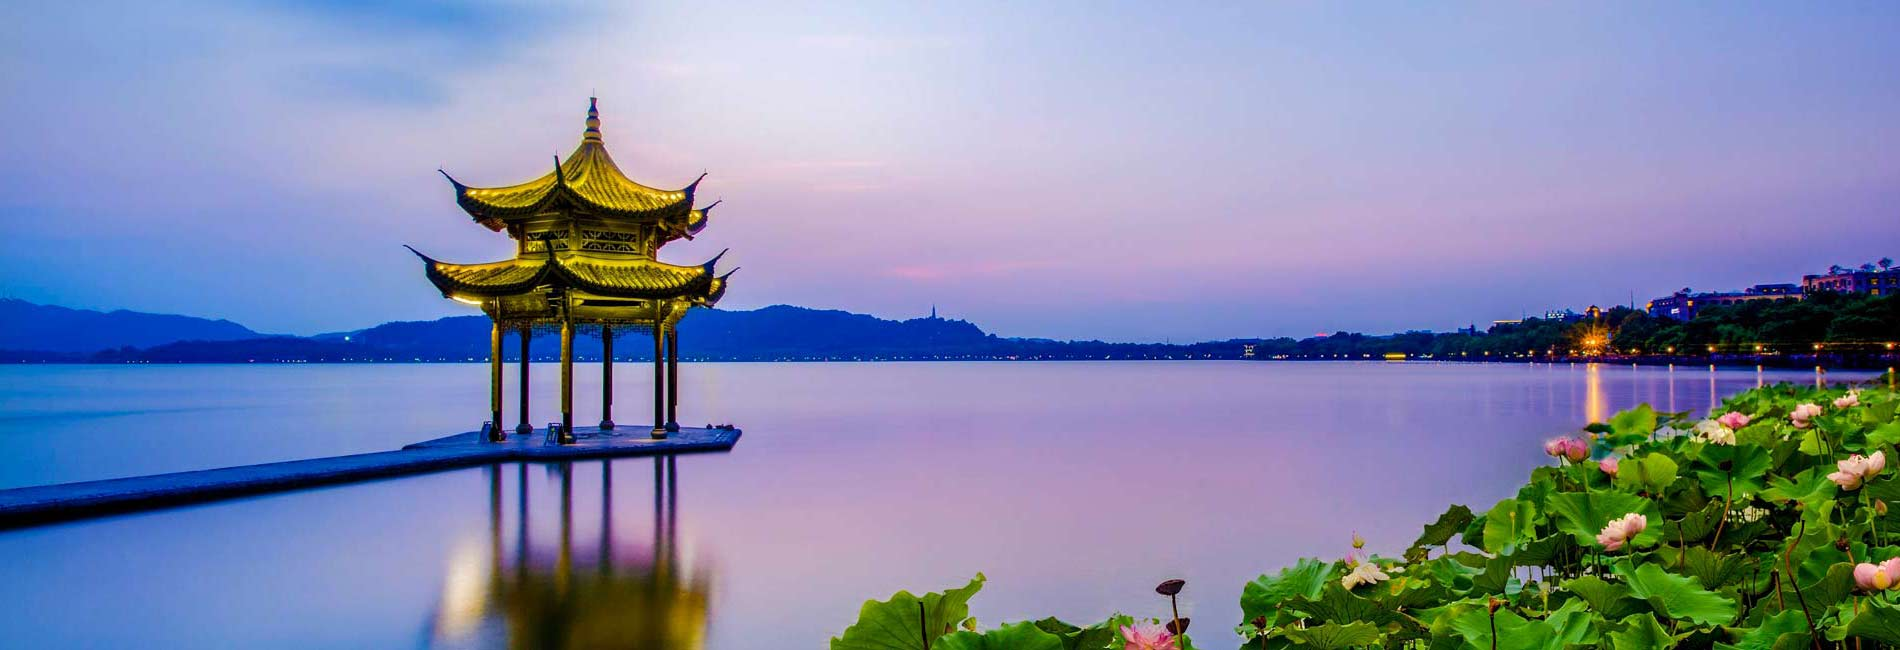 hangzhou West Lake longjing Tea Tours